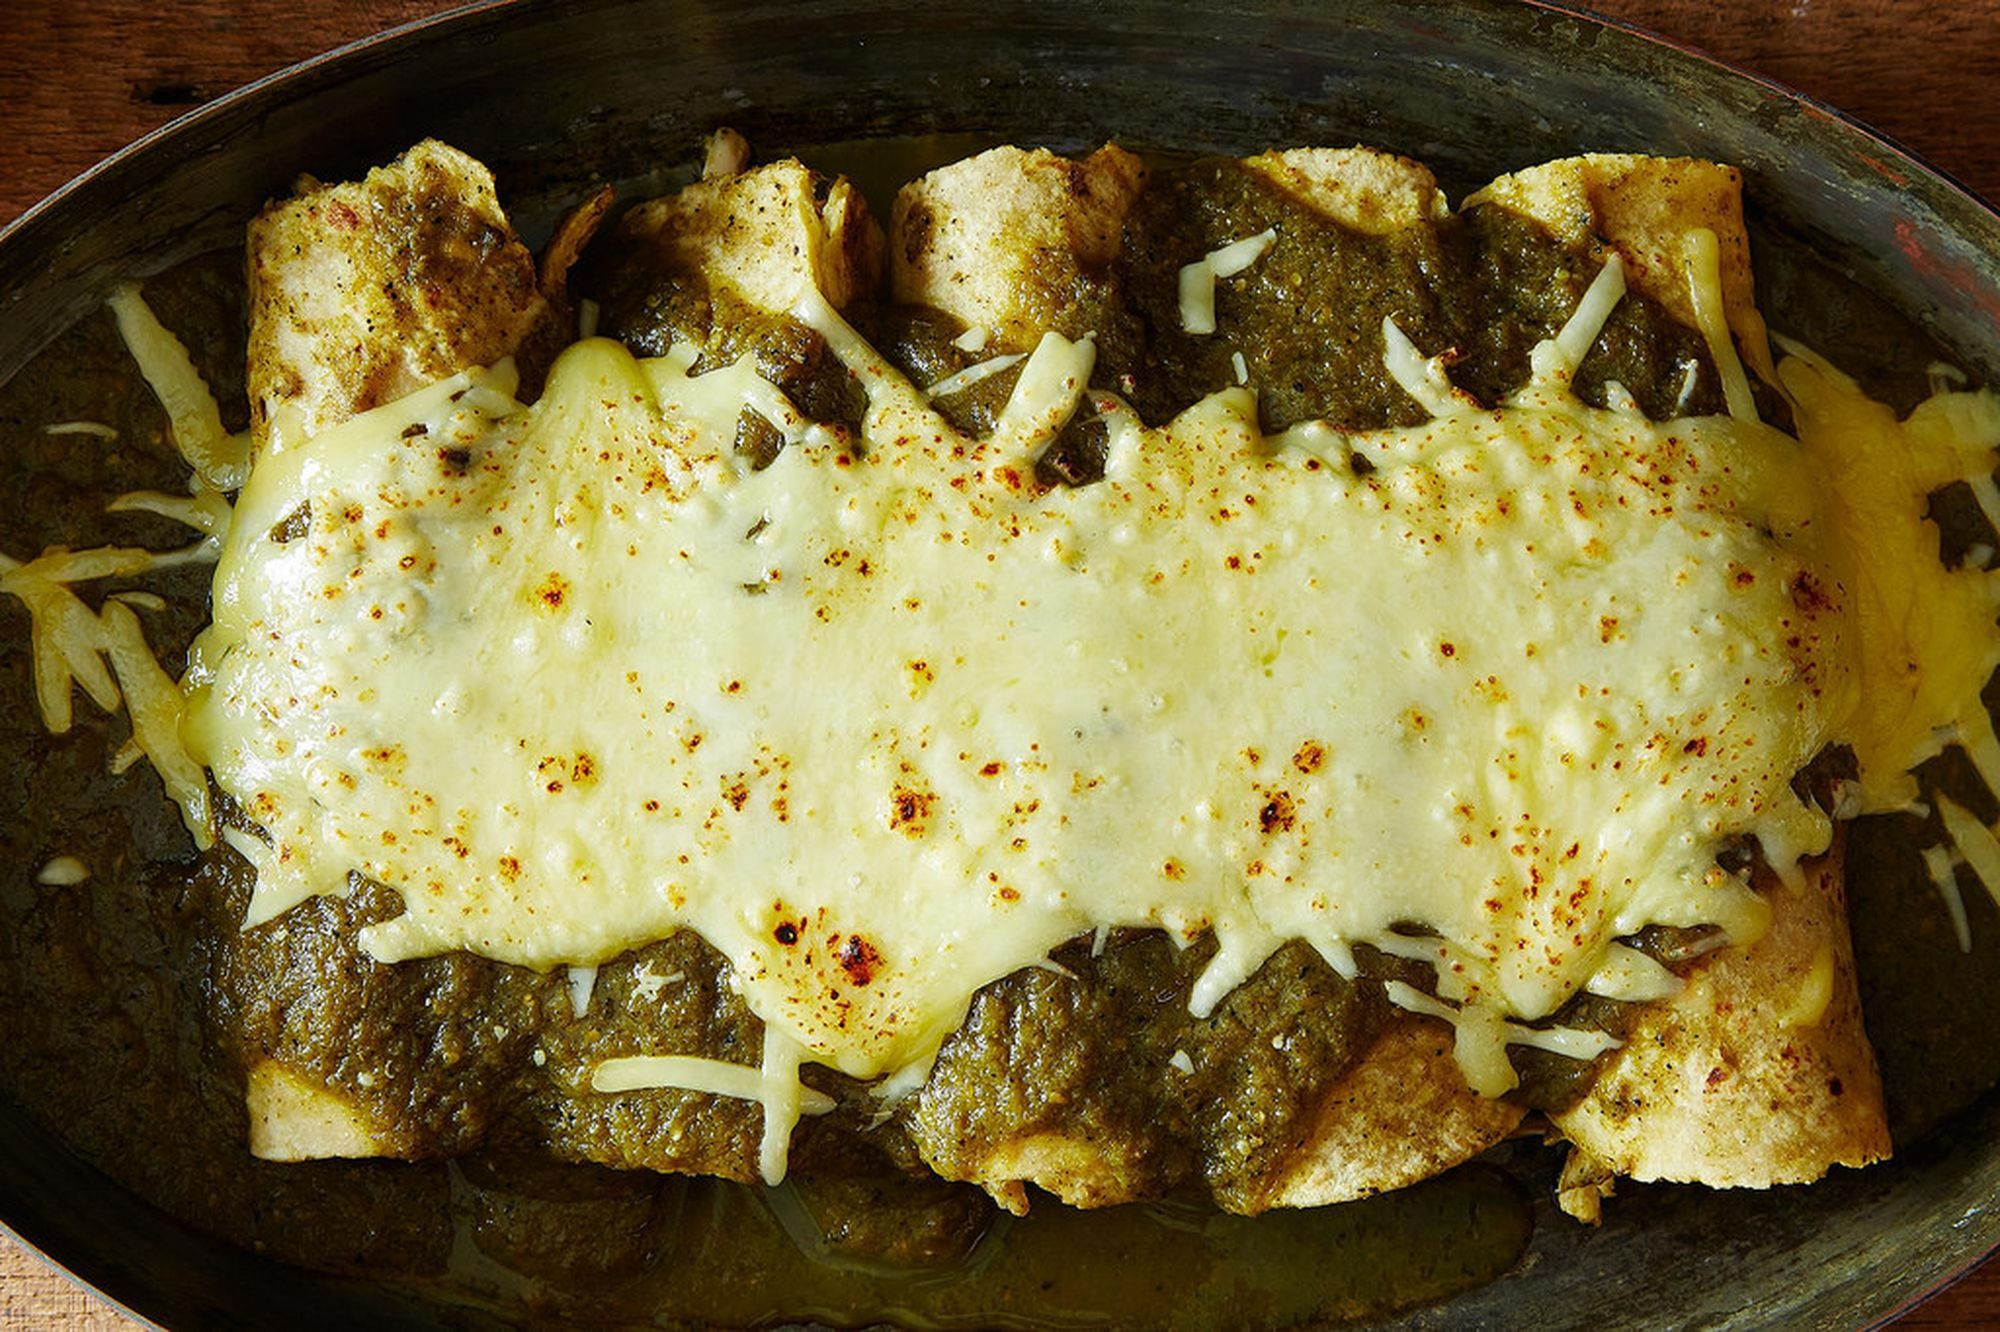 Enchiladas suizas recipe dinners dinner tonight and chicken 20 times rotisserie chicken gets you to dinner enchiladas suizas recipe on food52 forumfinder Choice Image